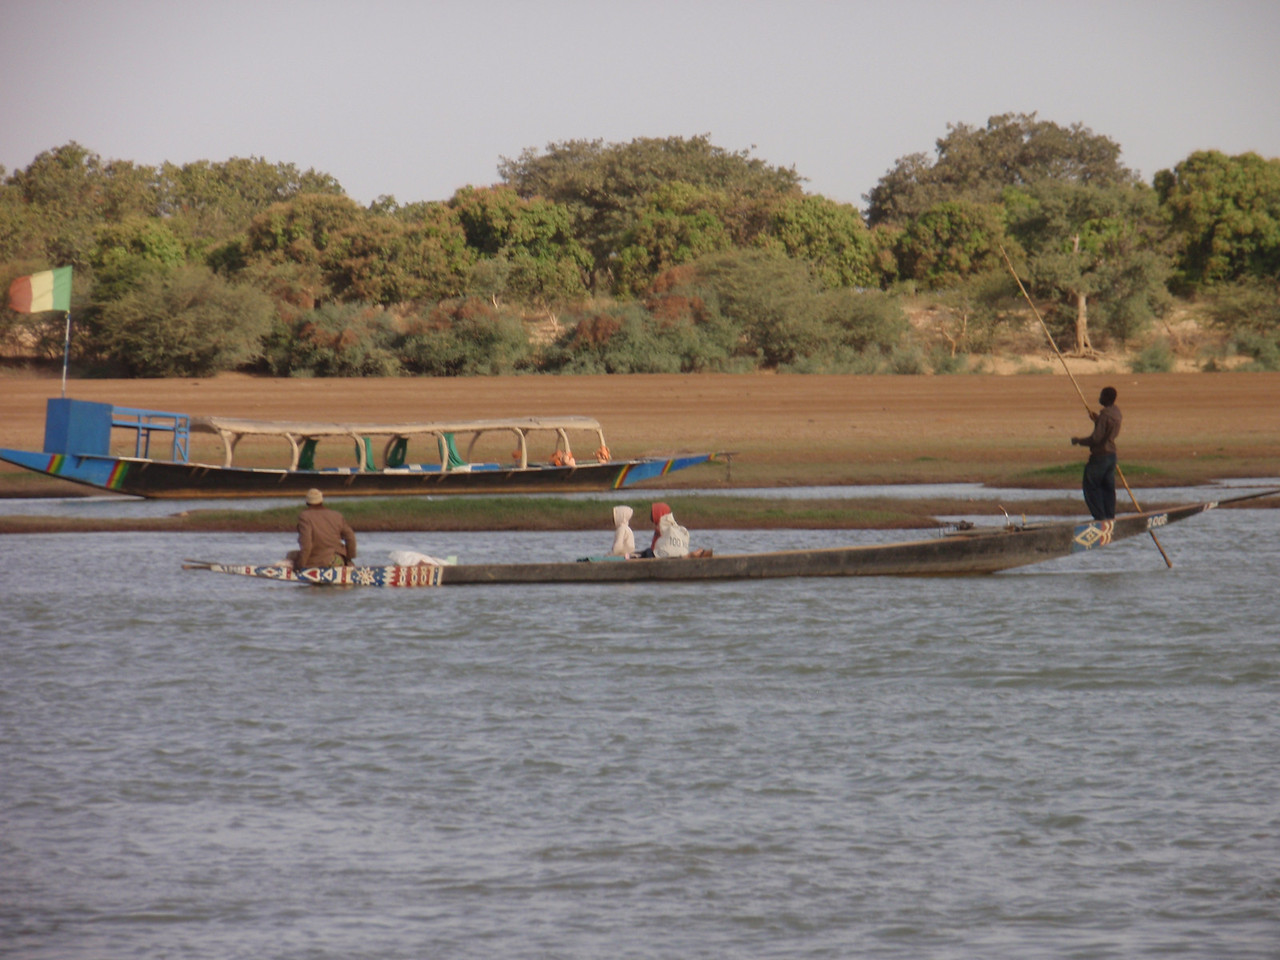 144_Djenne  Pirogue on the Bani River